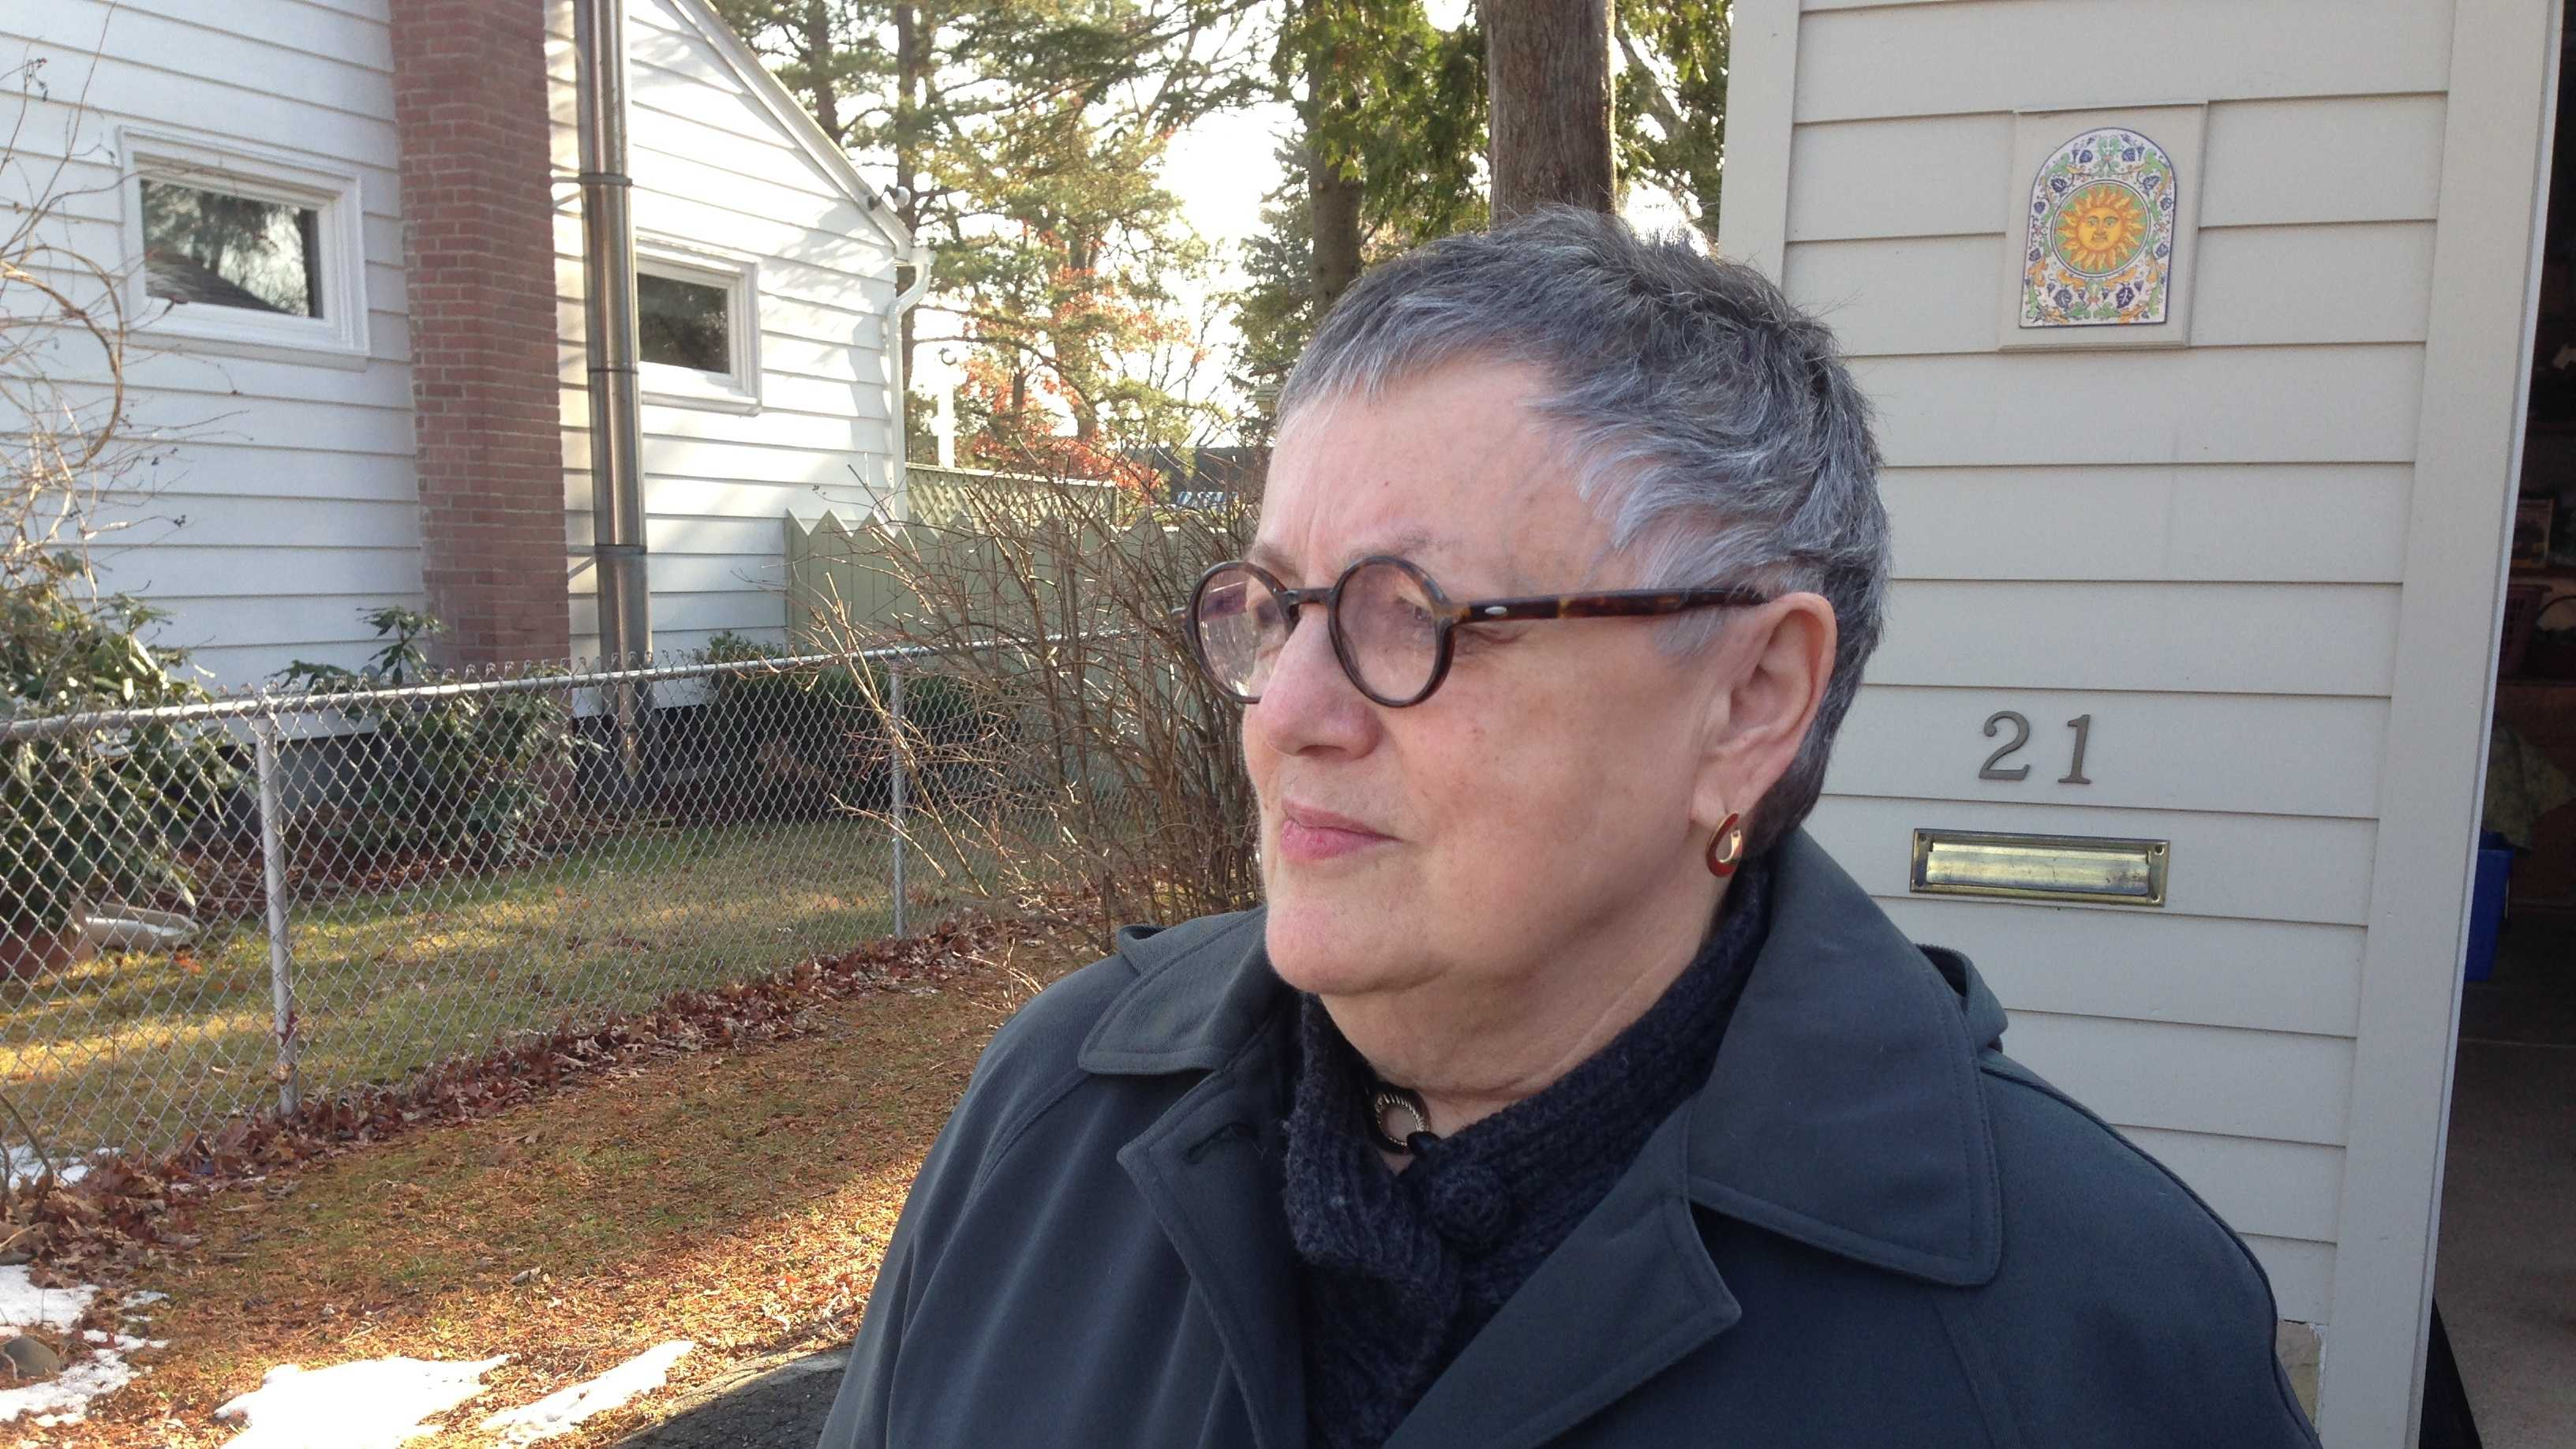 Carmine Sargent moved to her home on Elizabeth St. in South Burlington in 1972.